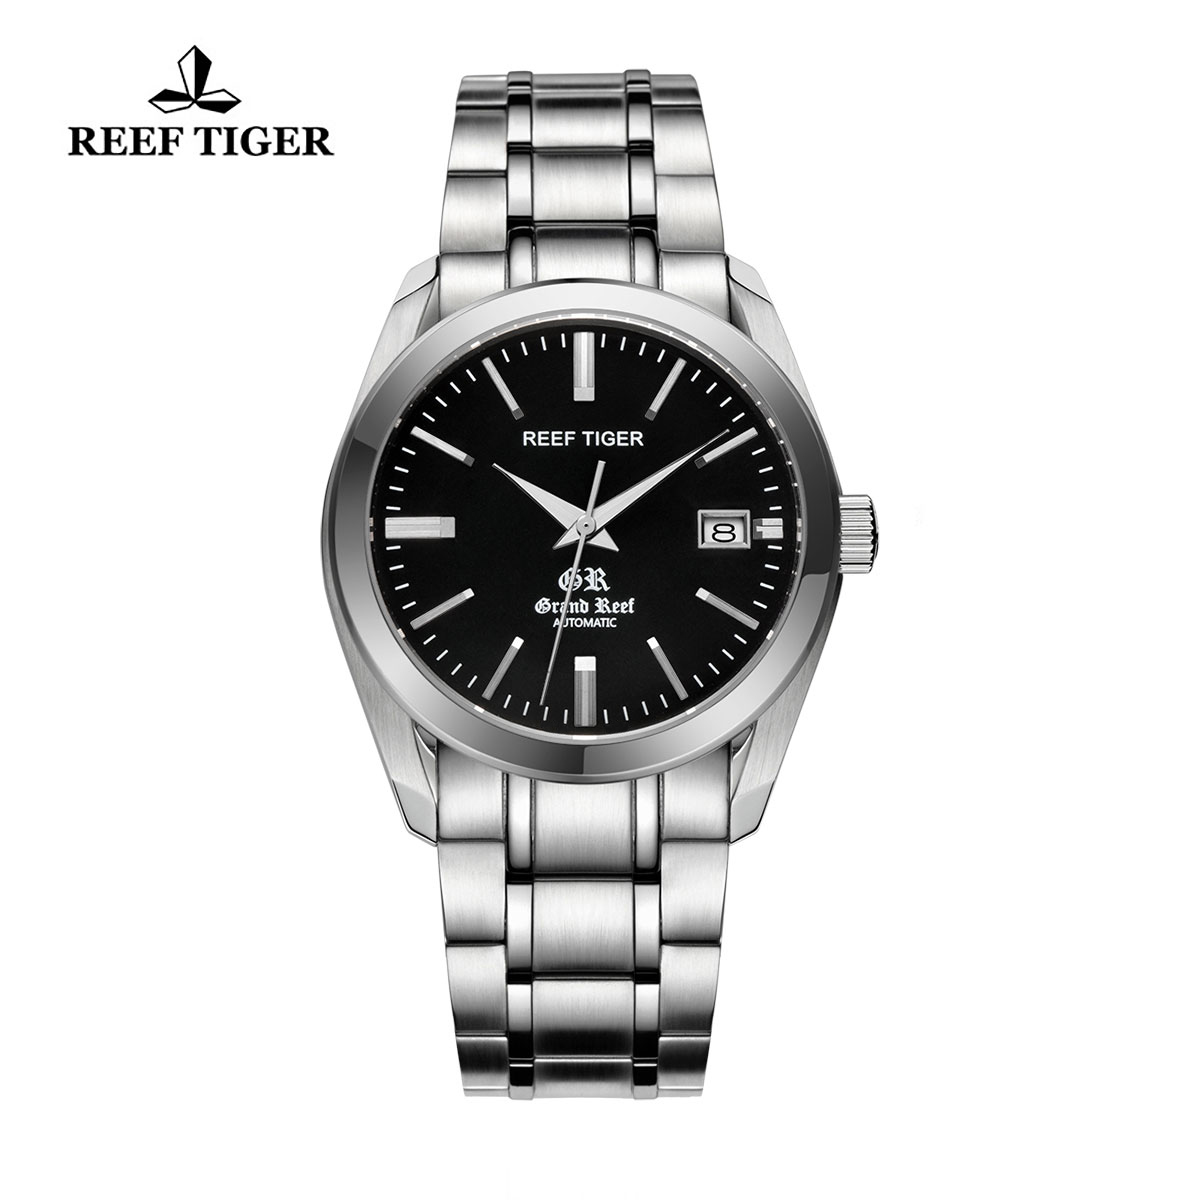 Reef Tiger Grand Reef Dress Watch with Date Black Dial Stainless Steel Watch RGA818-YBY